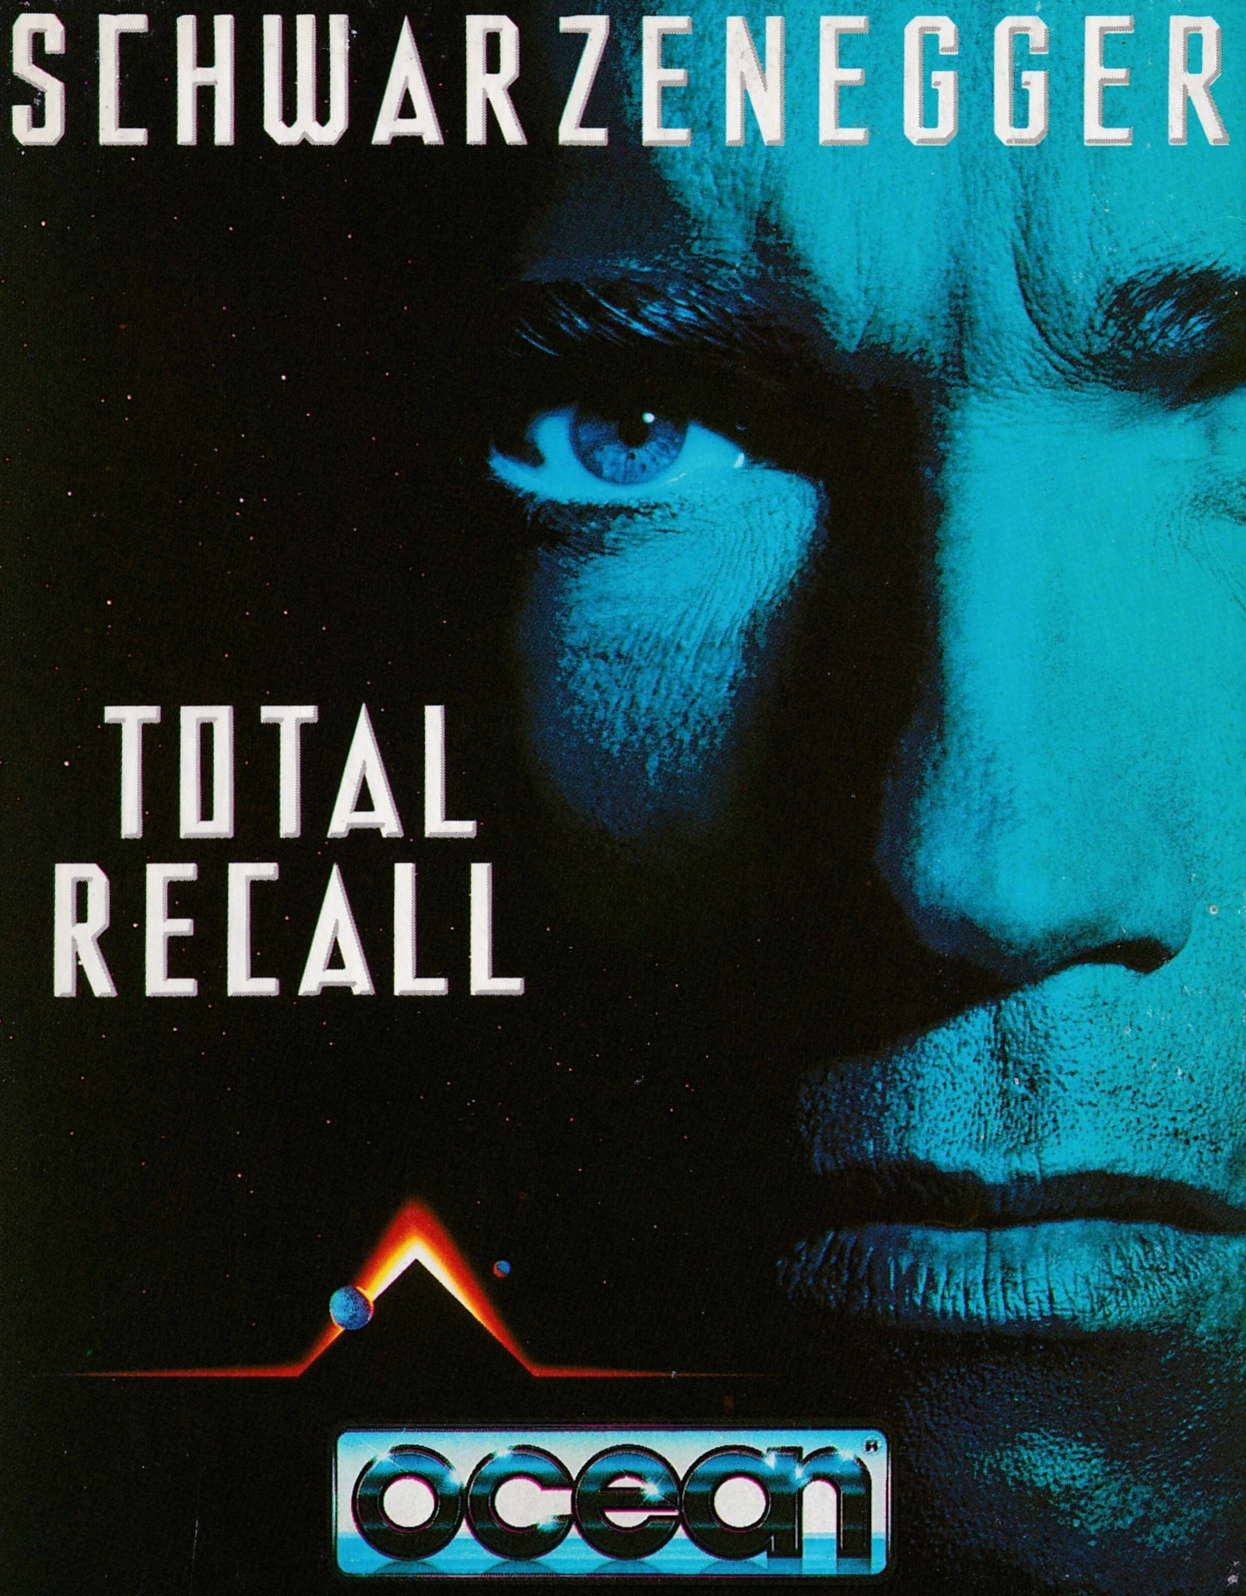 cover of the Amstrad CPC game Total Recall  by GameBase CPC